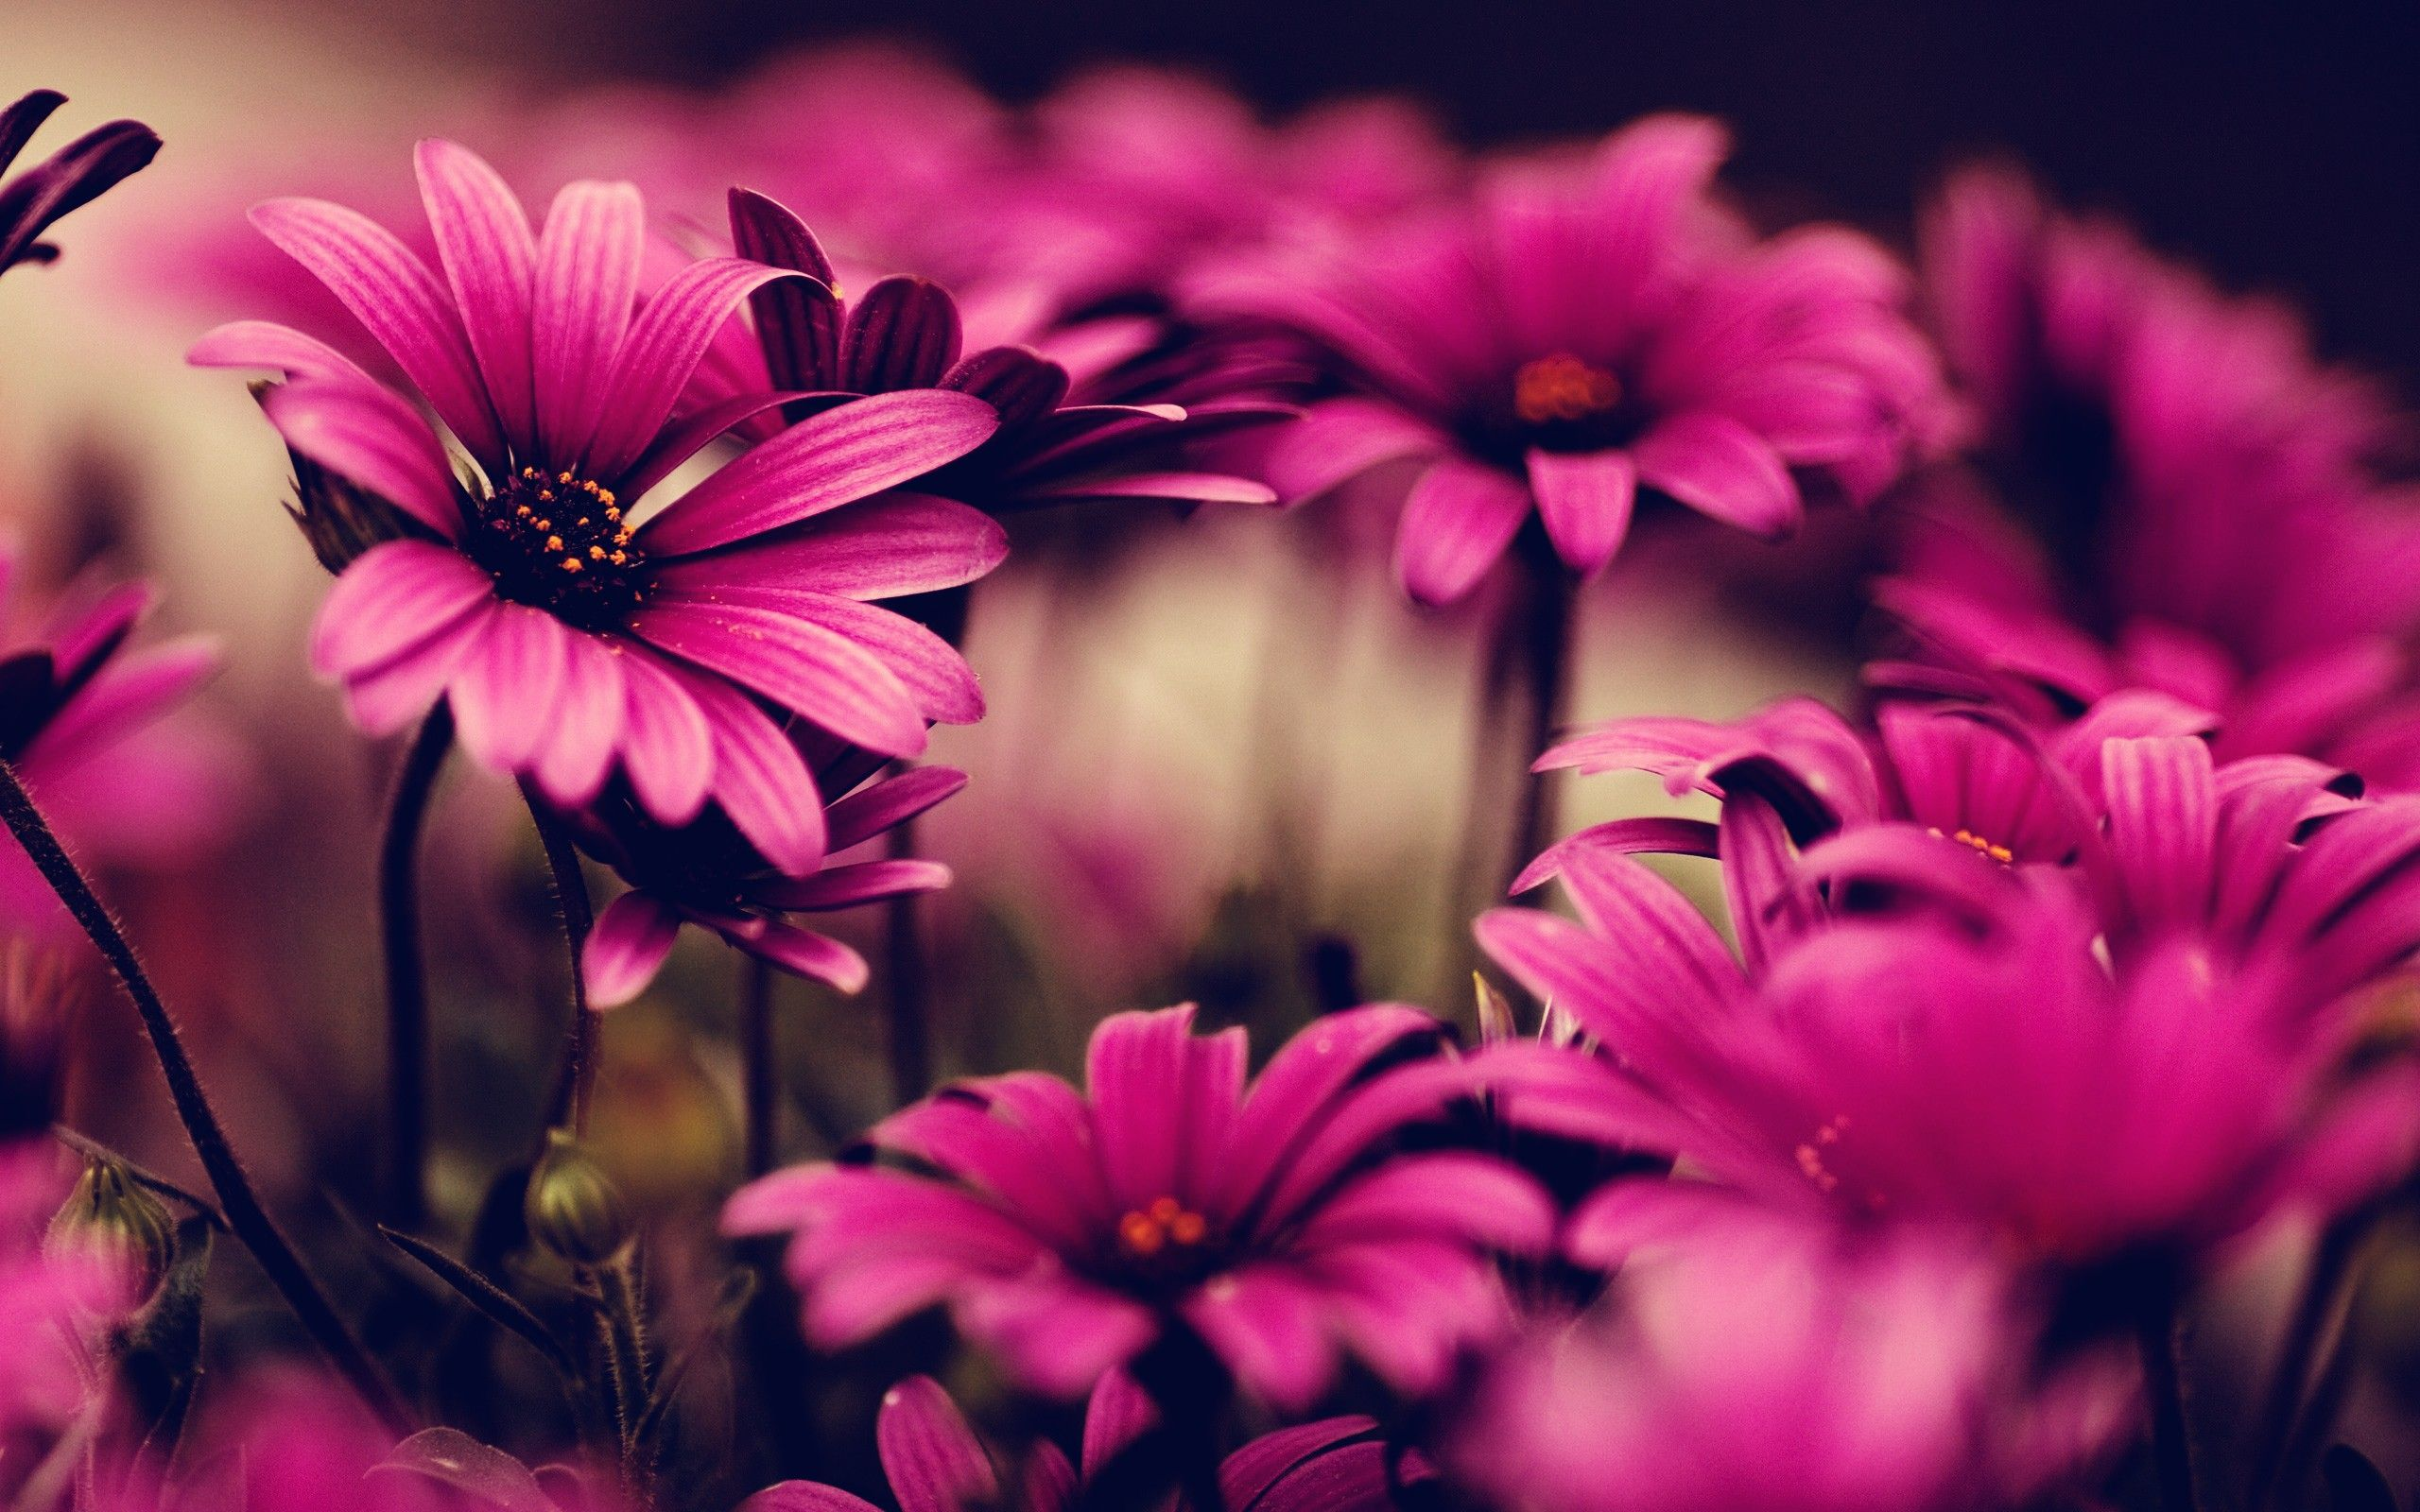 Pink Flowers Hd Wallpapers Top Free Pink Flowers Hd Backgrounds Wallpaperaccess